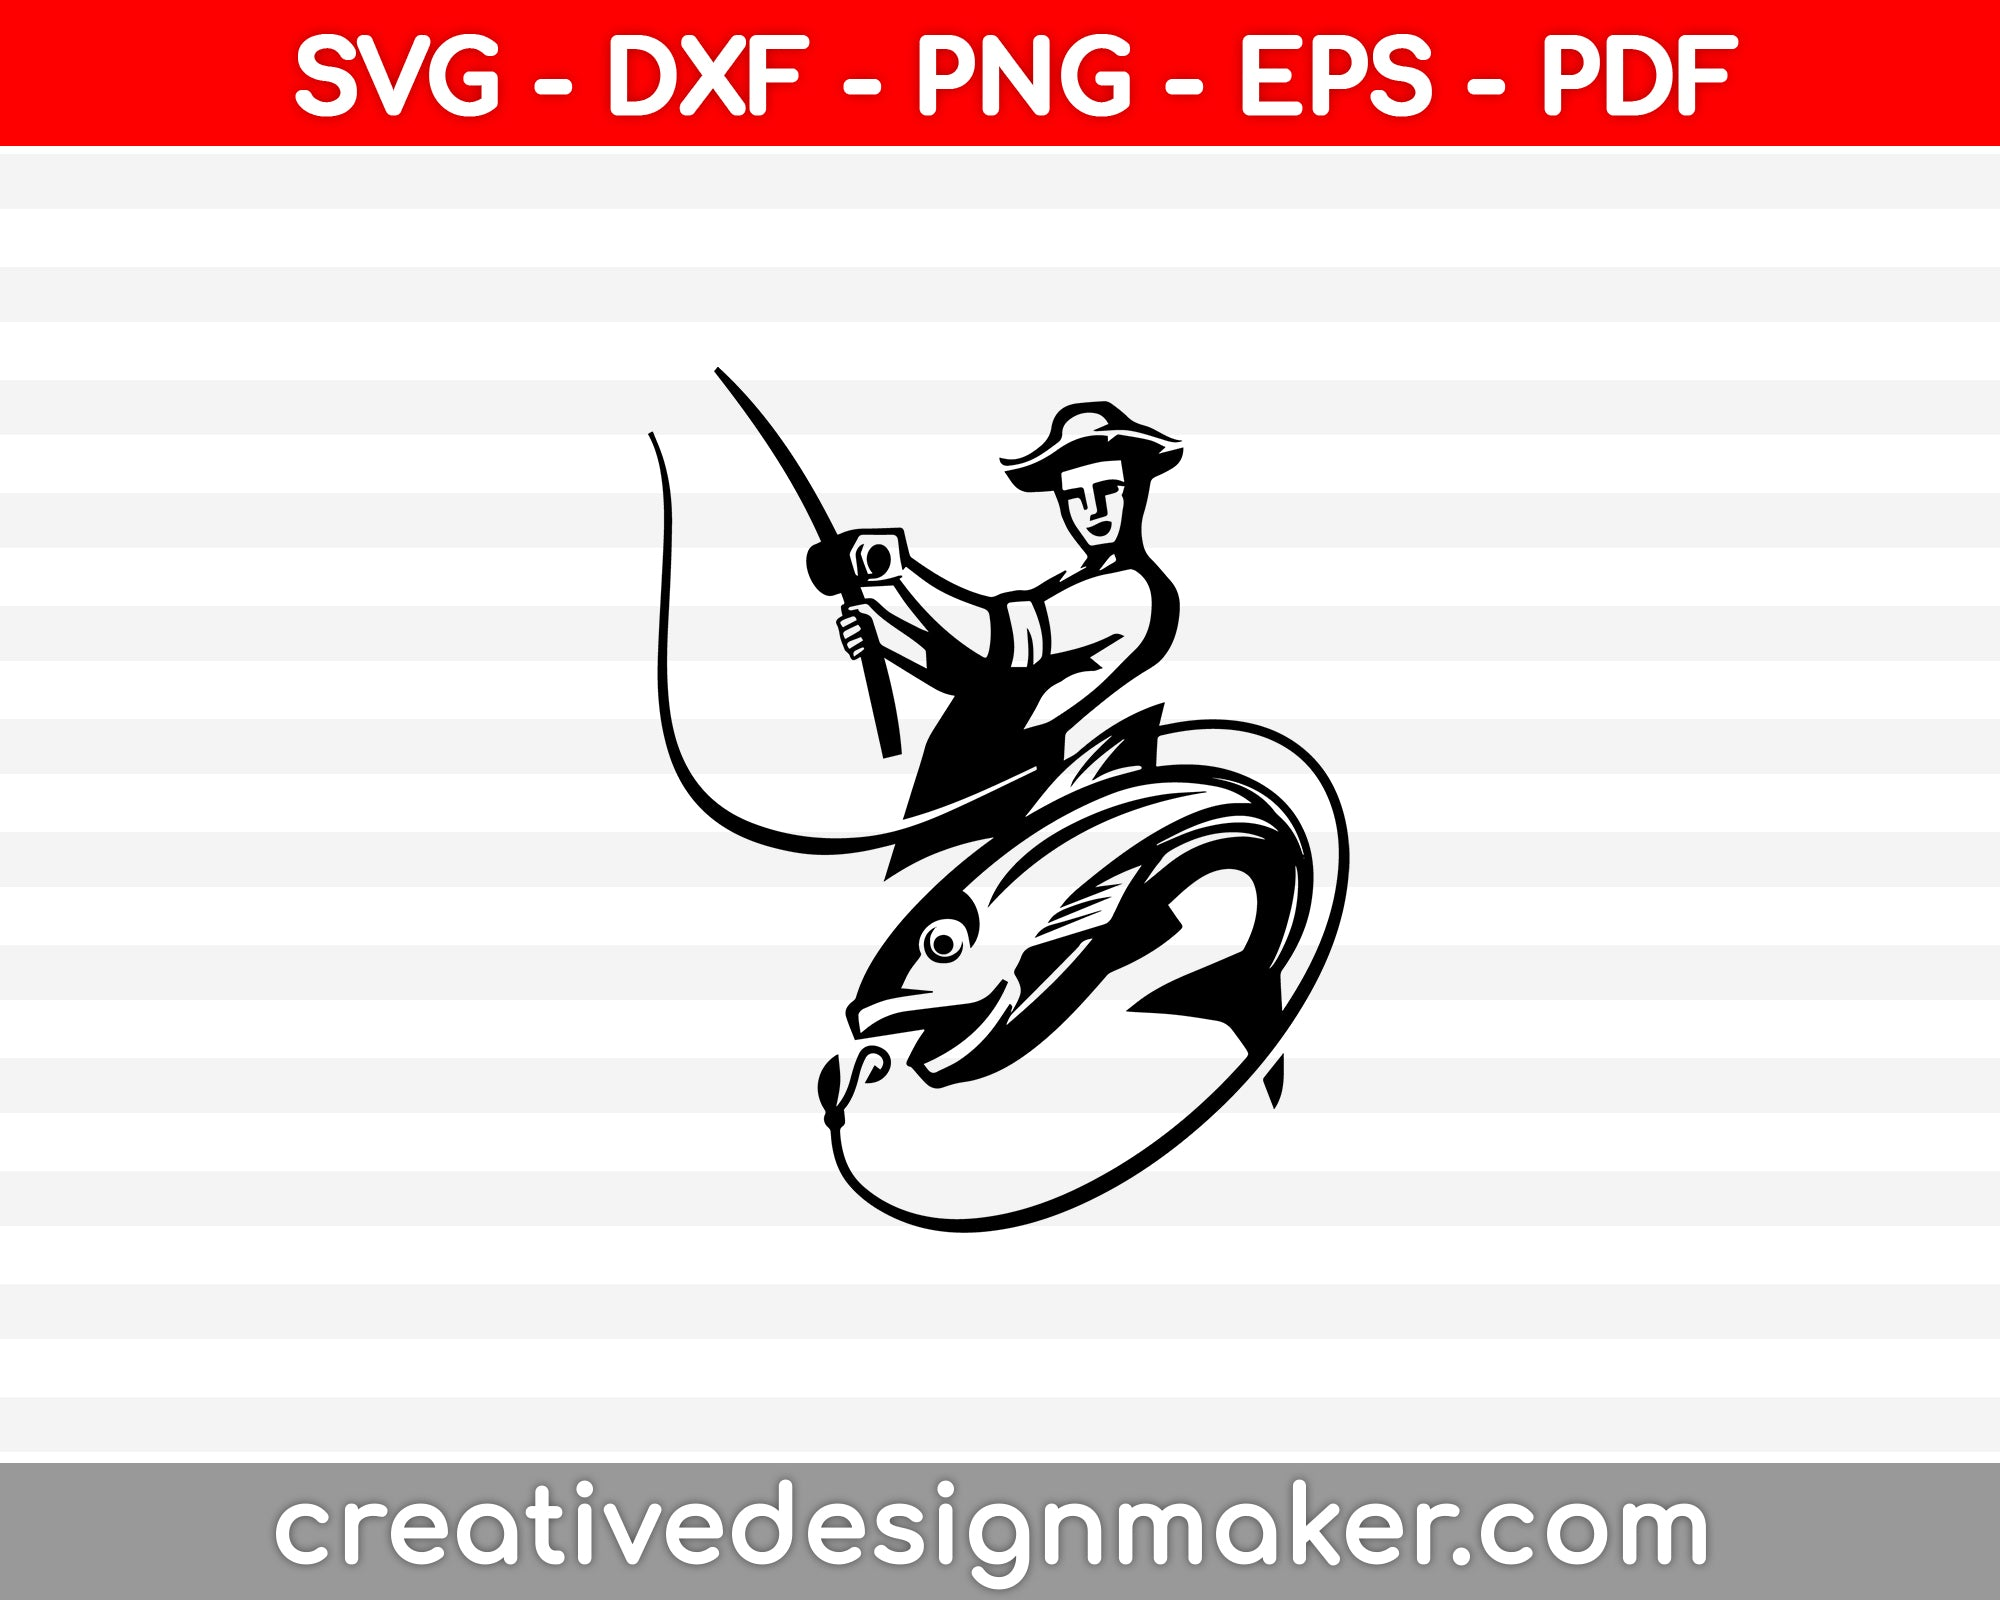 Fisher Man SVG, DXF, PNG, EPS, PDF Printable Files